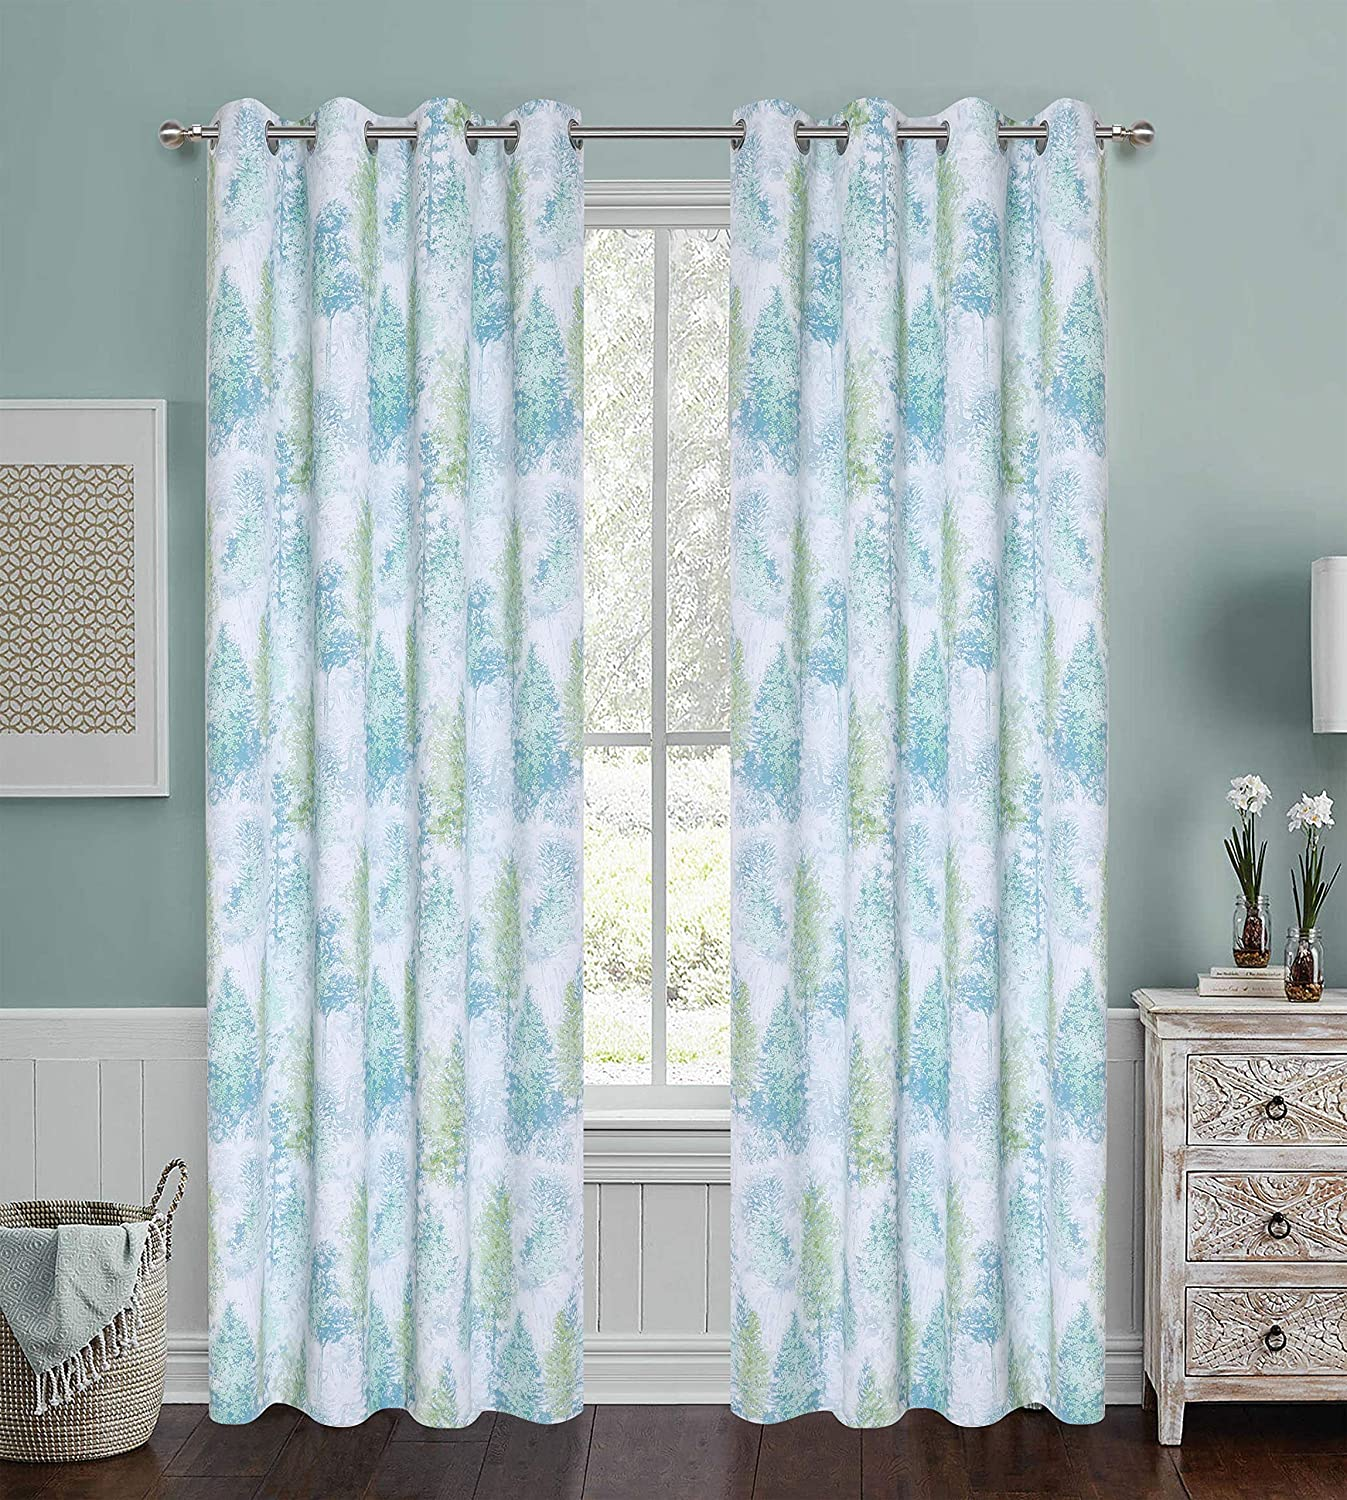 Home Fashion Print Forest Blackout Curtains for Nursery Kids Country Style Watercolor Trees and Leaves Window Panels Perfect for Living Room Grommet Set of 2 95 inch Length Green Grey Yellow